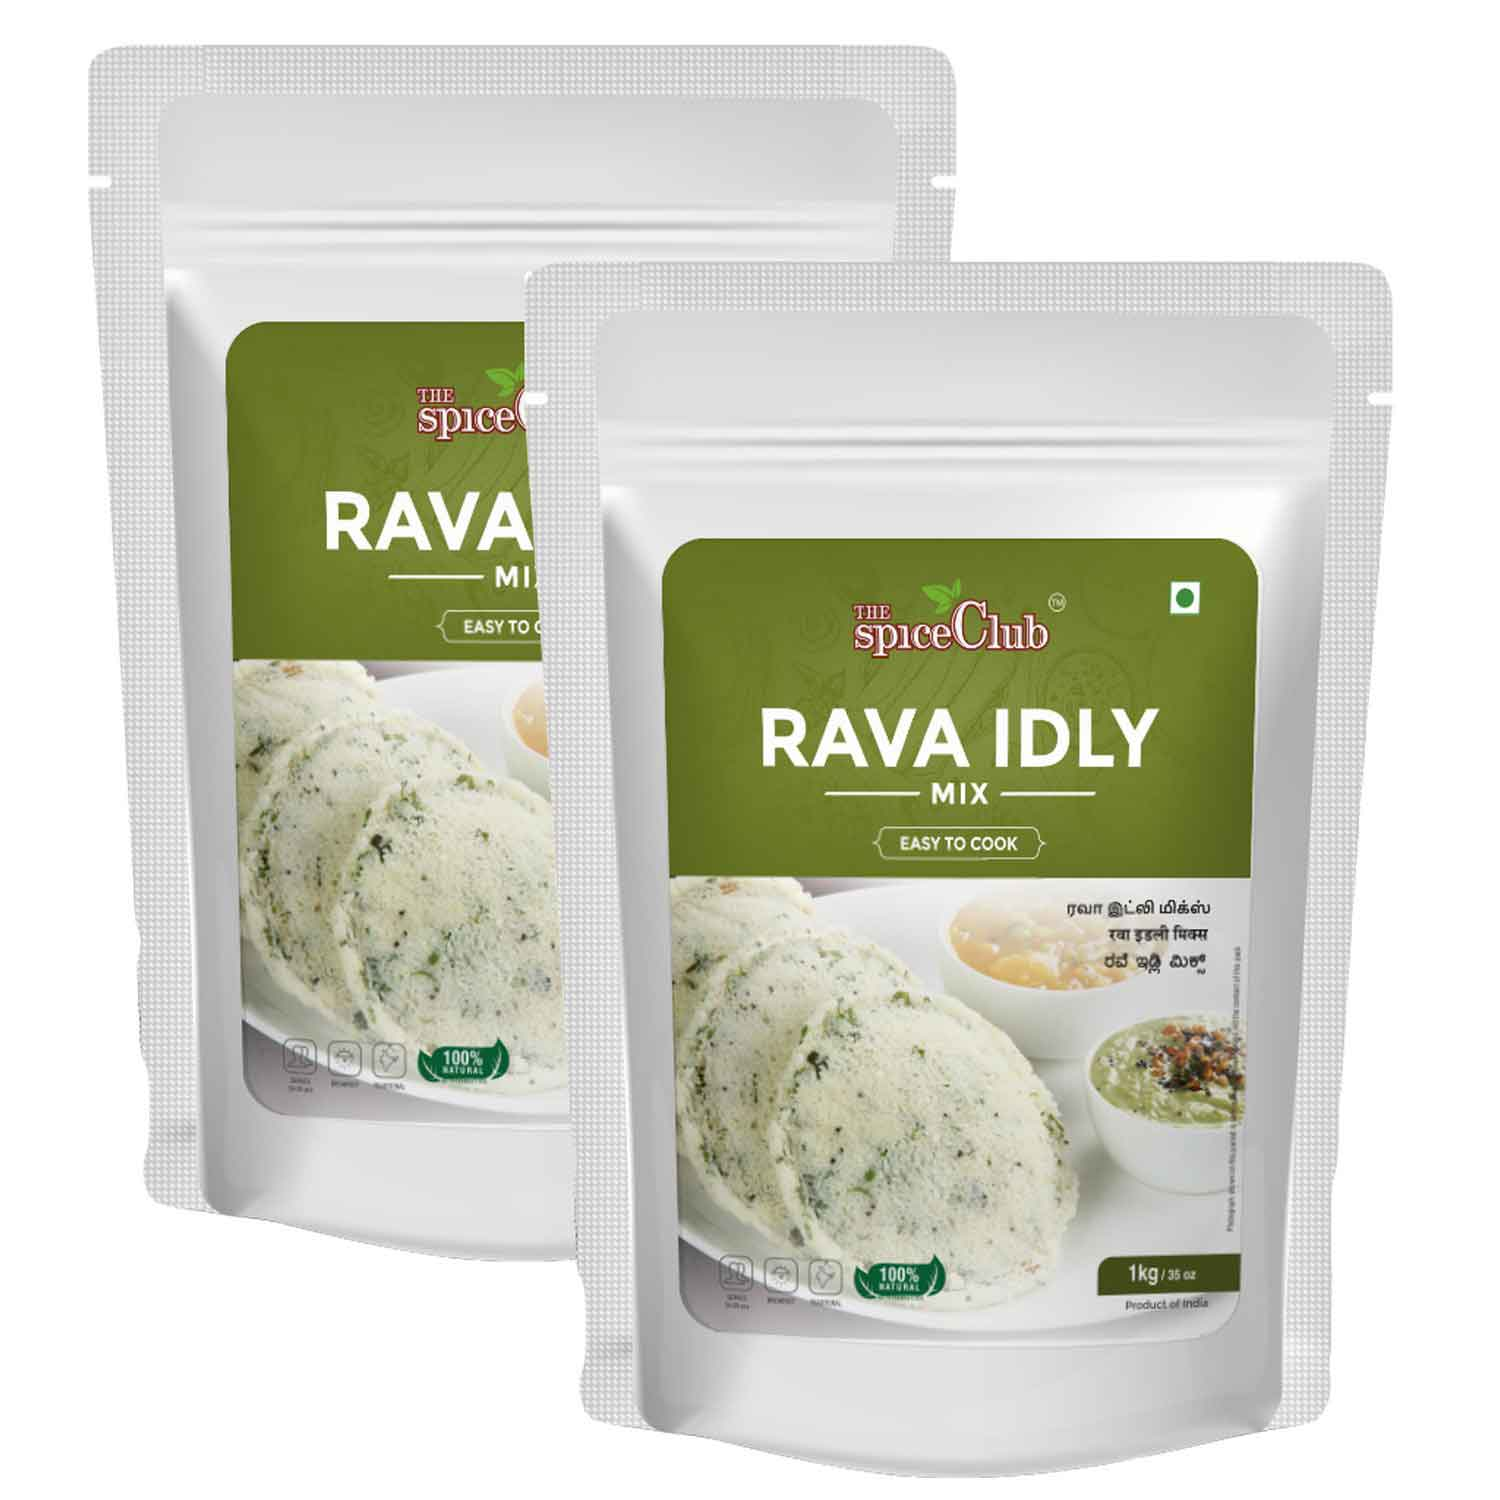 Rava Idly Mix 1KG - Pack of 2 ( 100% Natural, No Preservatives, No Artificial Ingredients)